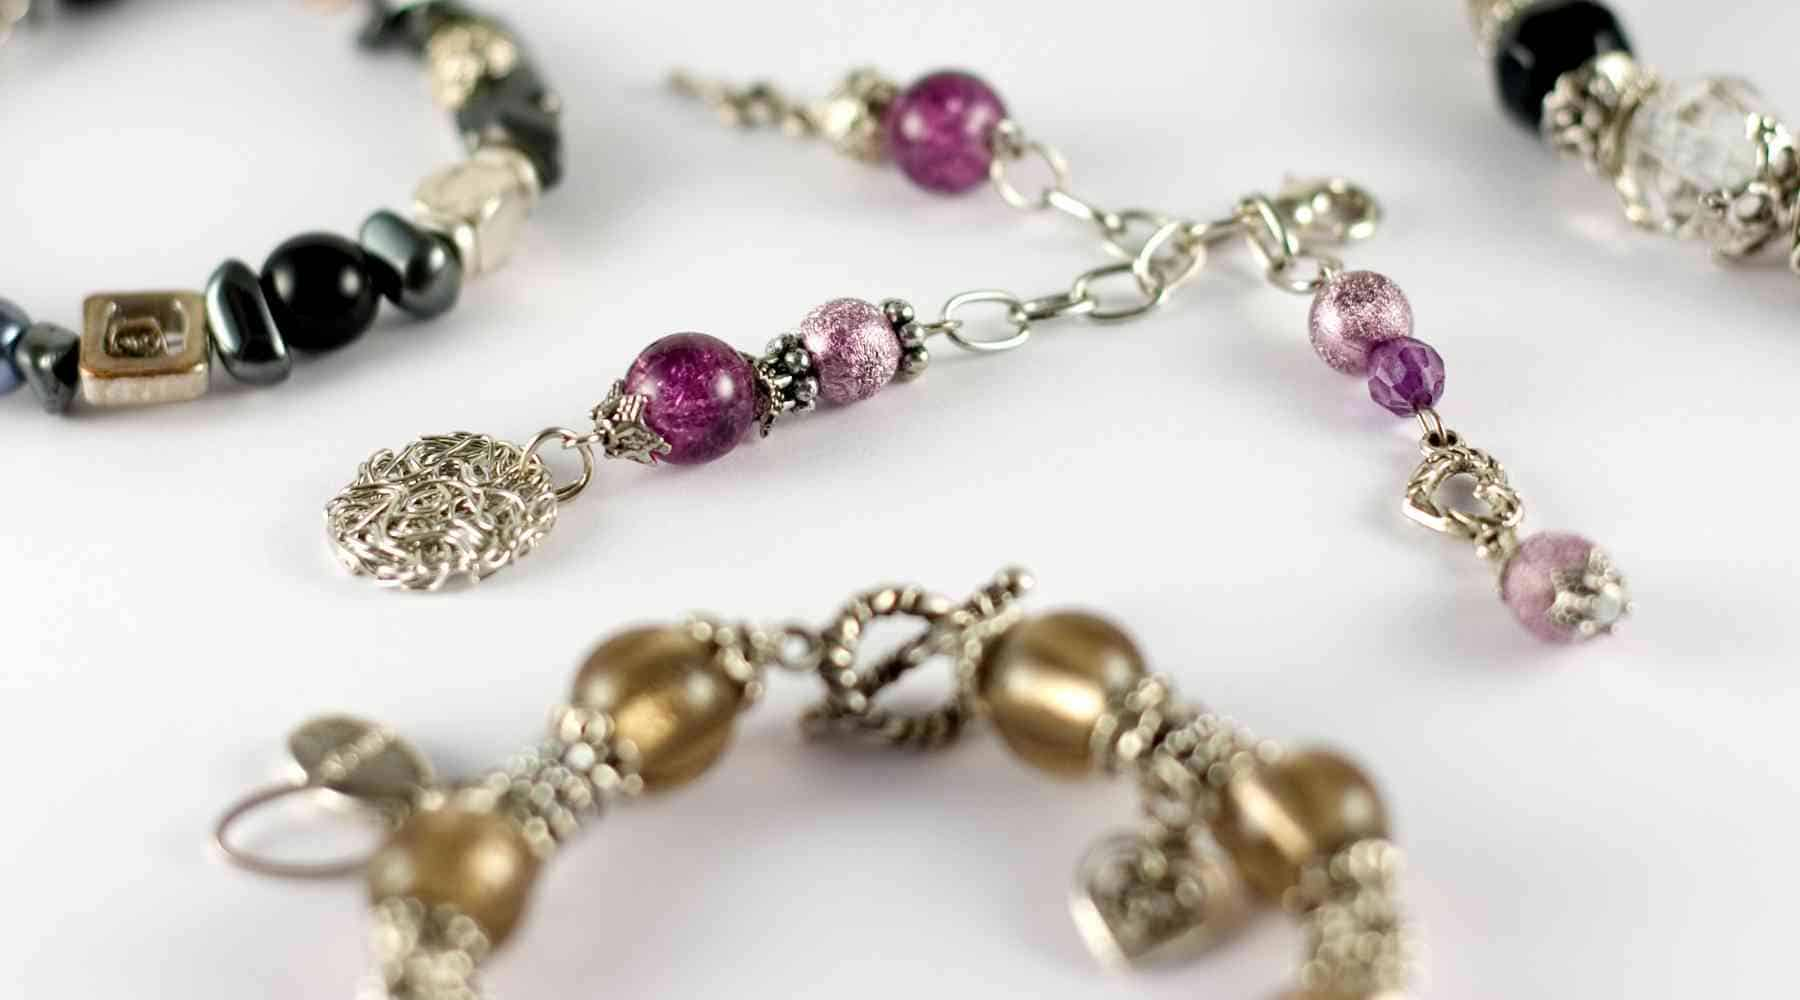 Best Things to Sell on Etsy - Jewelry